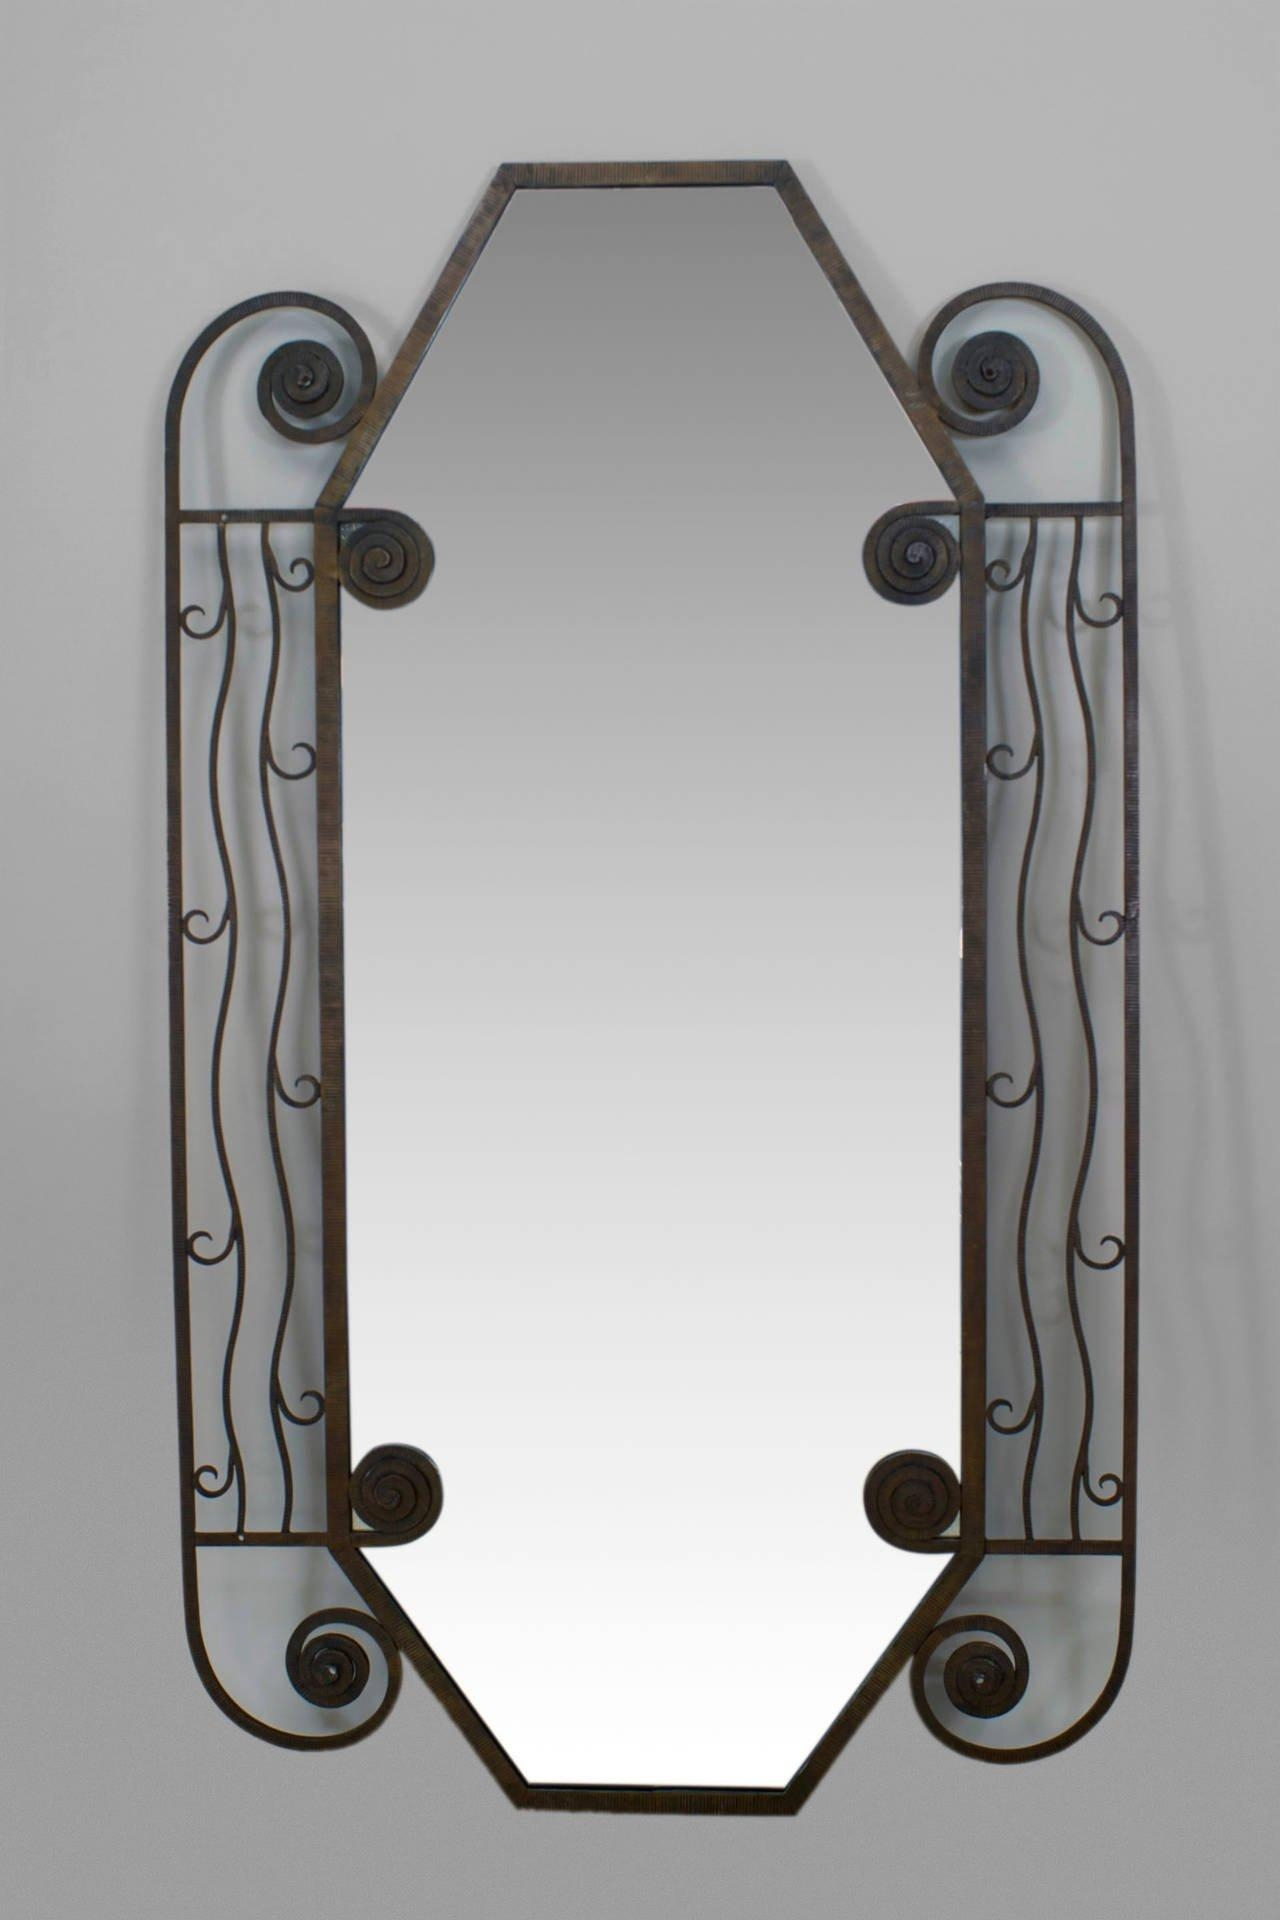 1930's French Art Deco Iron Wall Mirror For Sale At 1Stdibs Intended For Art Deco Wall Mirrors (View 6 of 20)